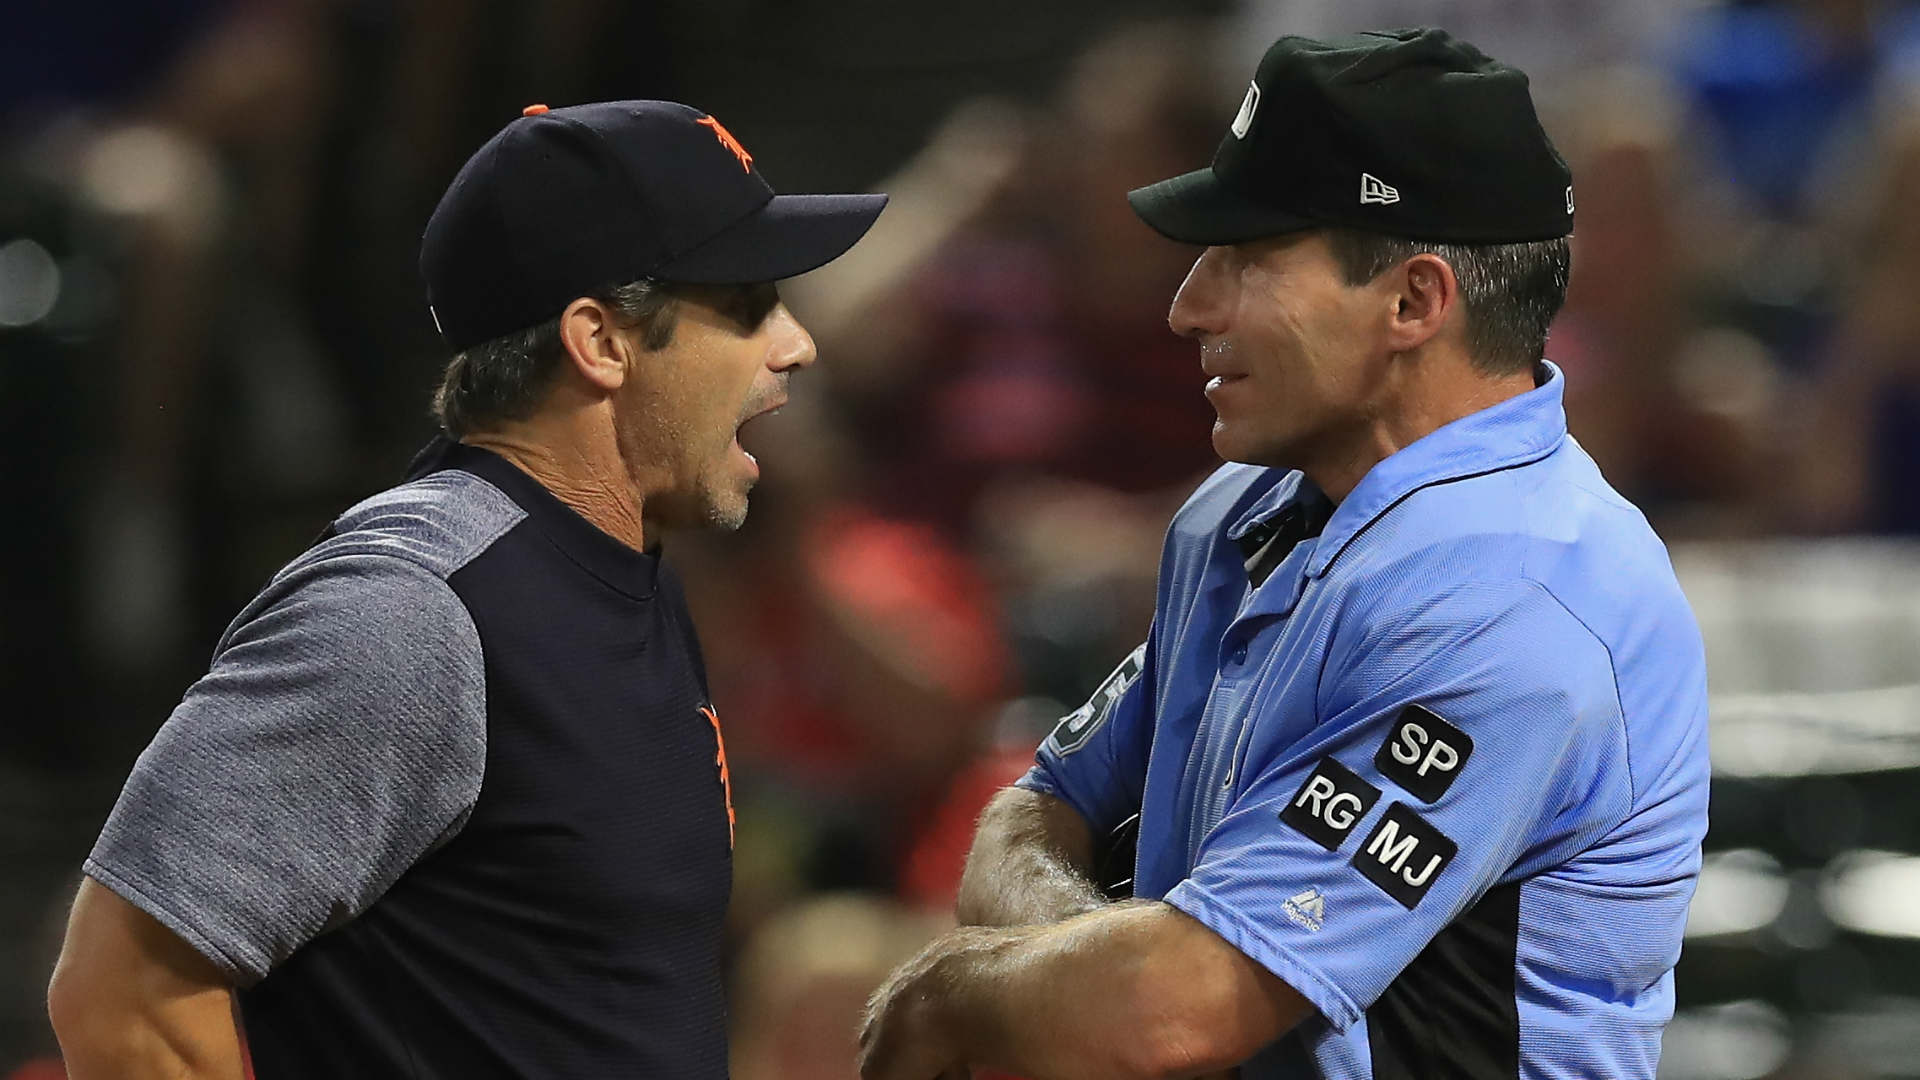 Major League Baseball umpires protesting pattern of 'escalating verbal attacks'